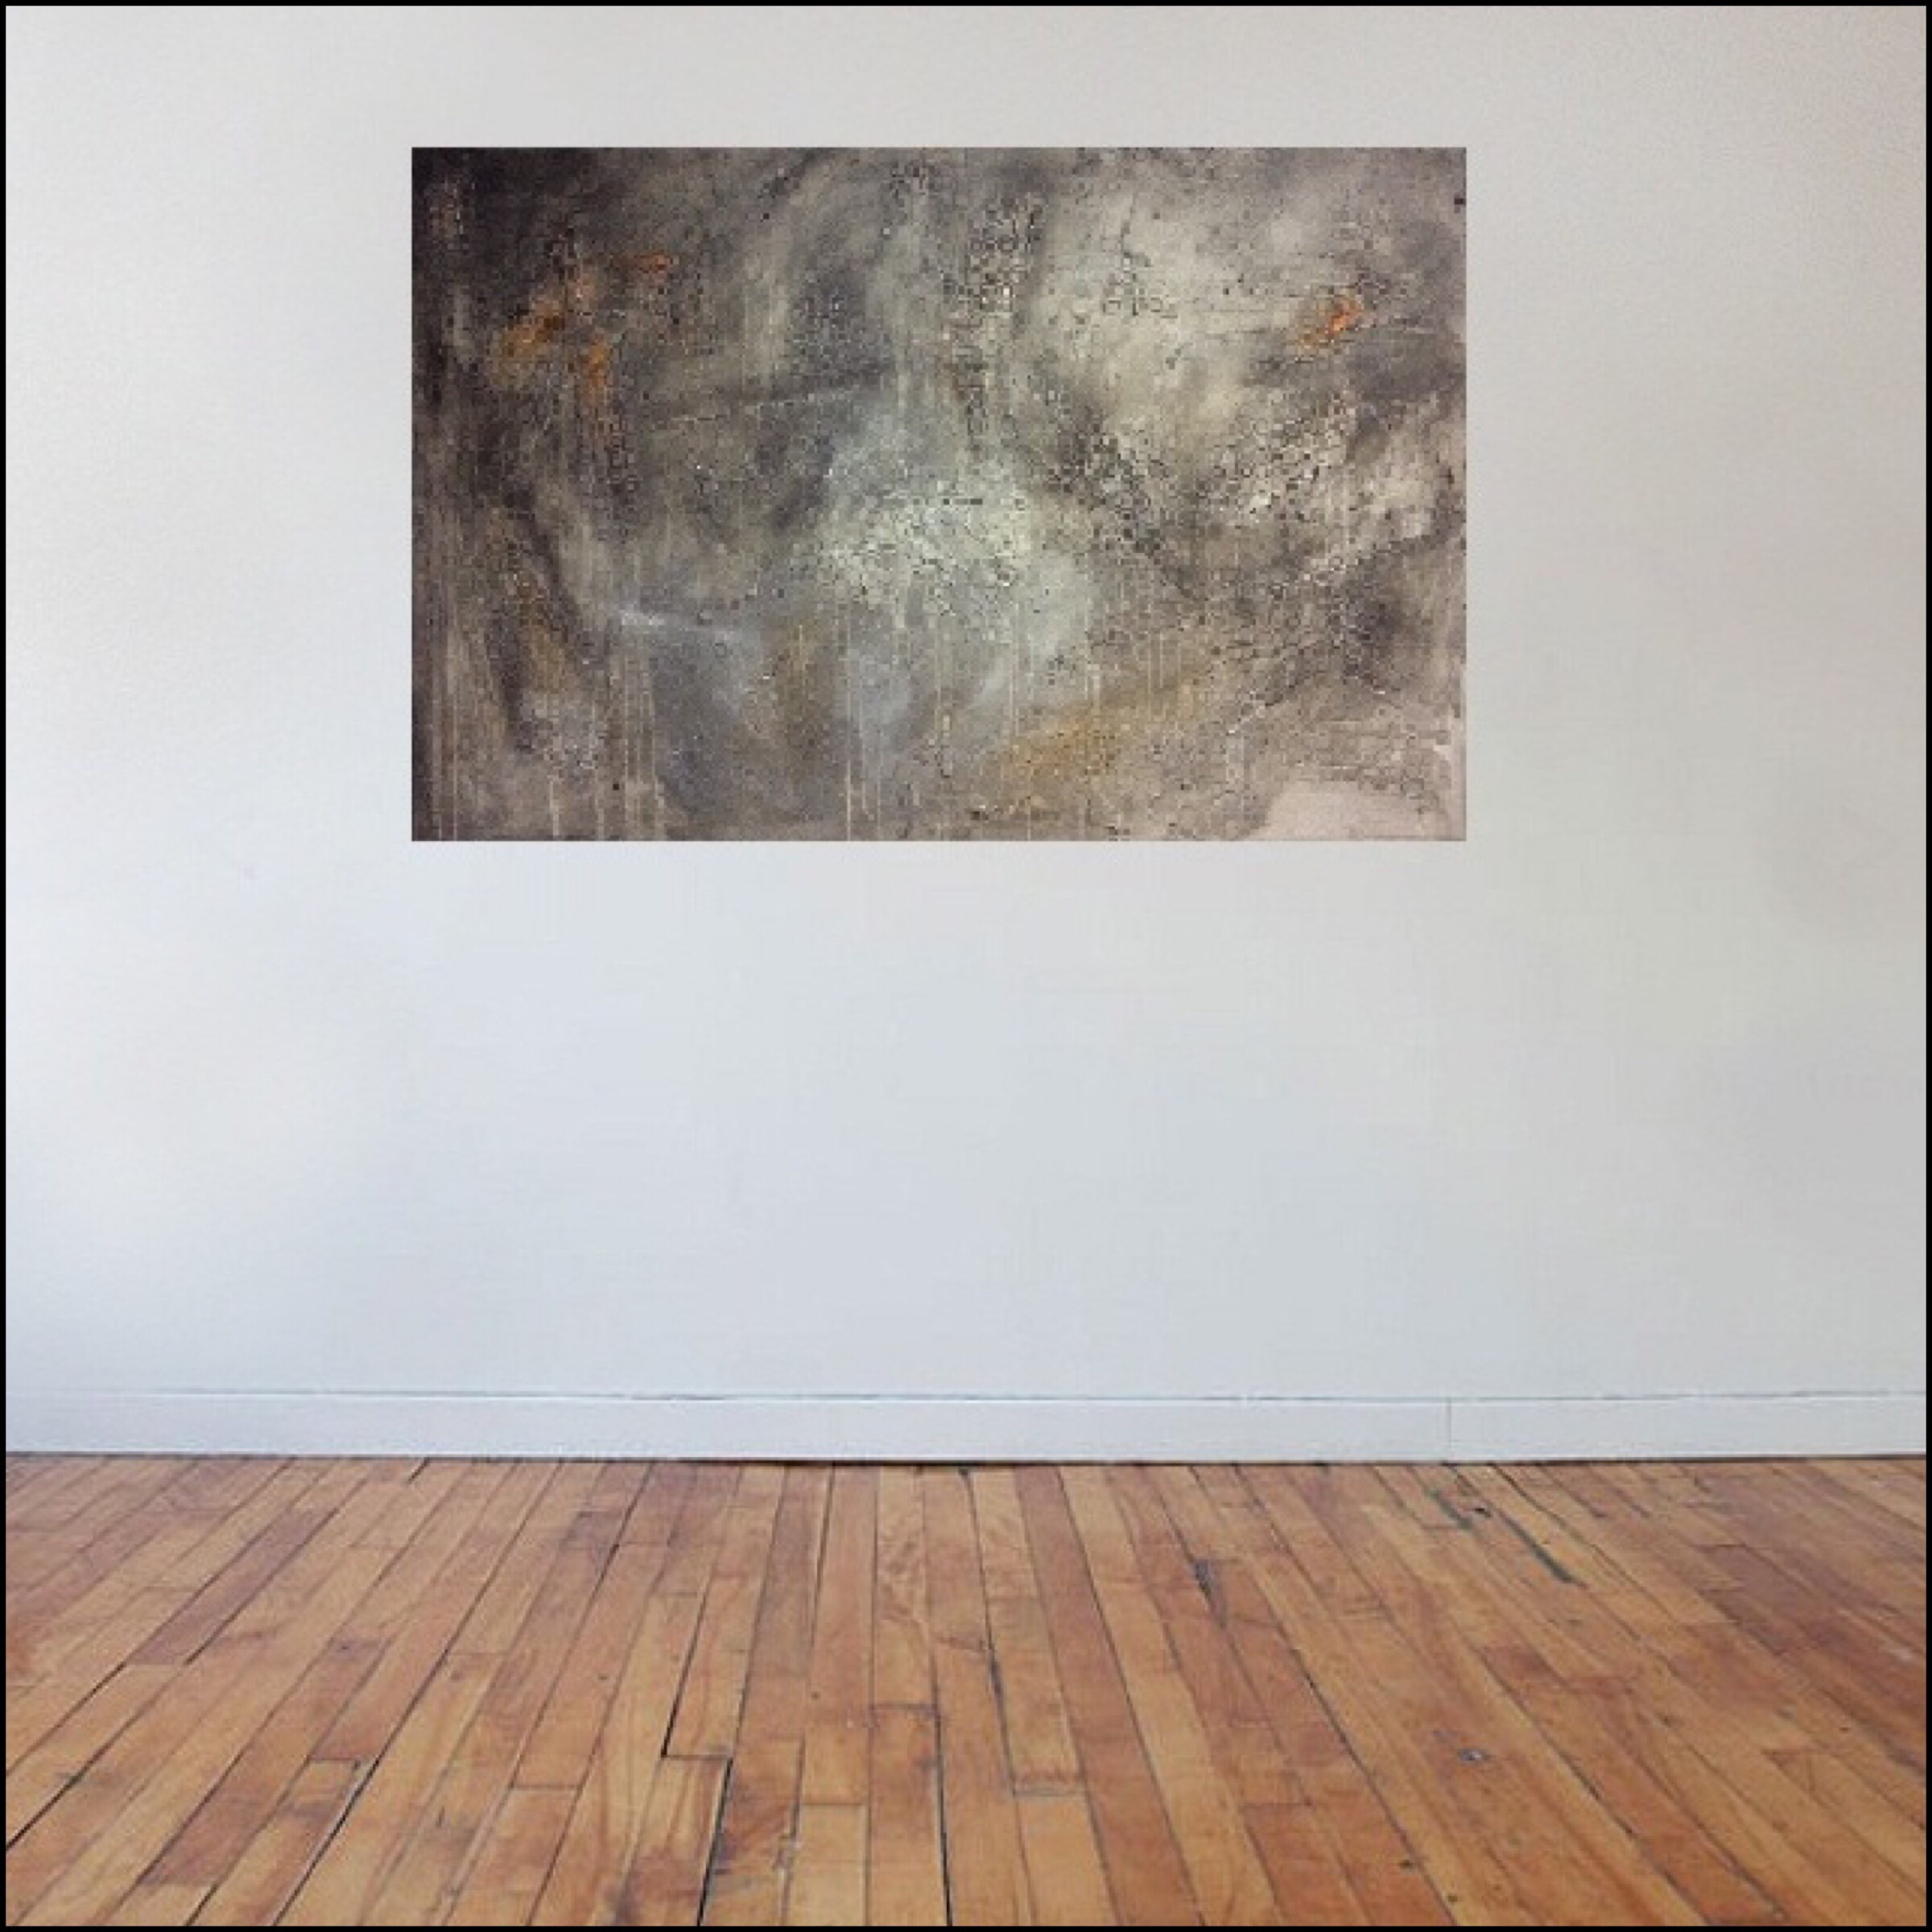 Interior design: Textured abstract painting in grey and a touch of orange